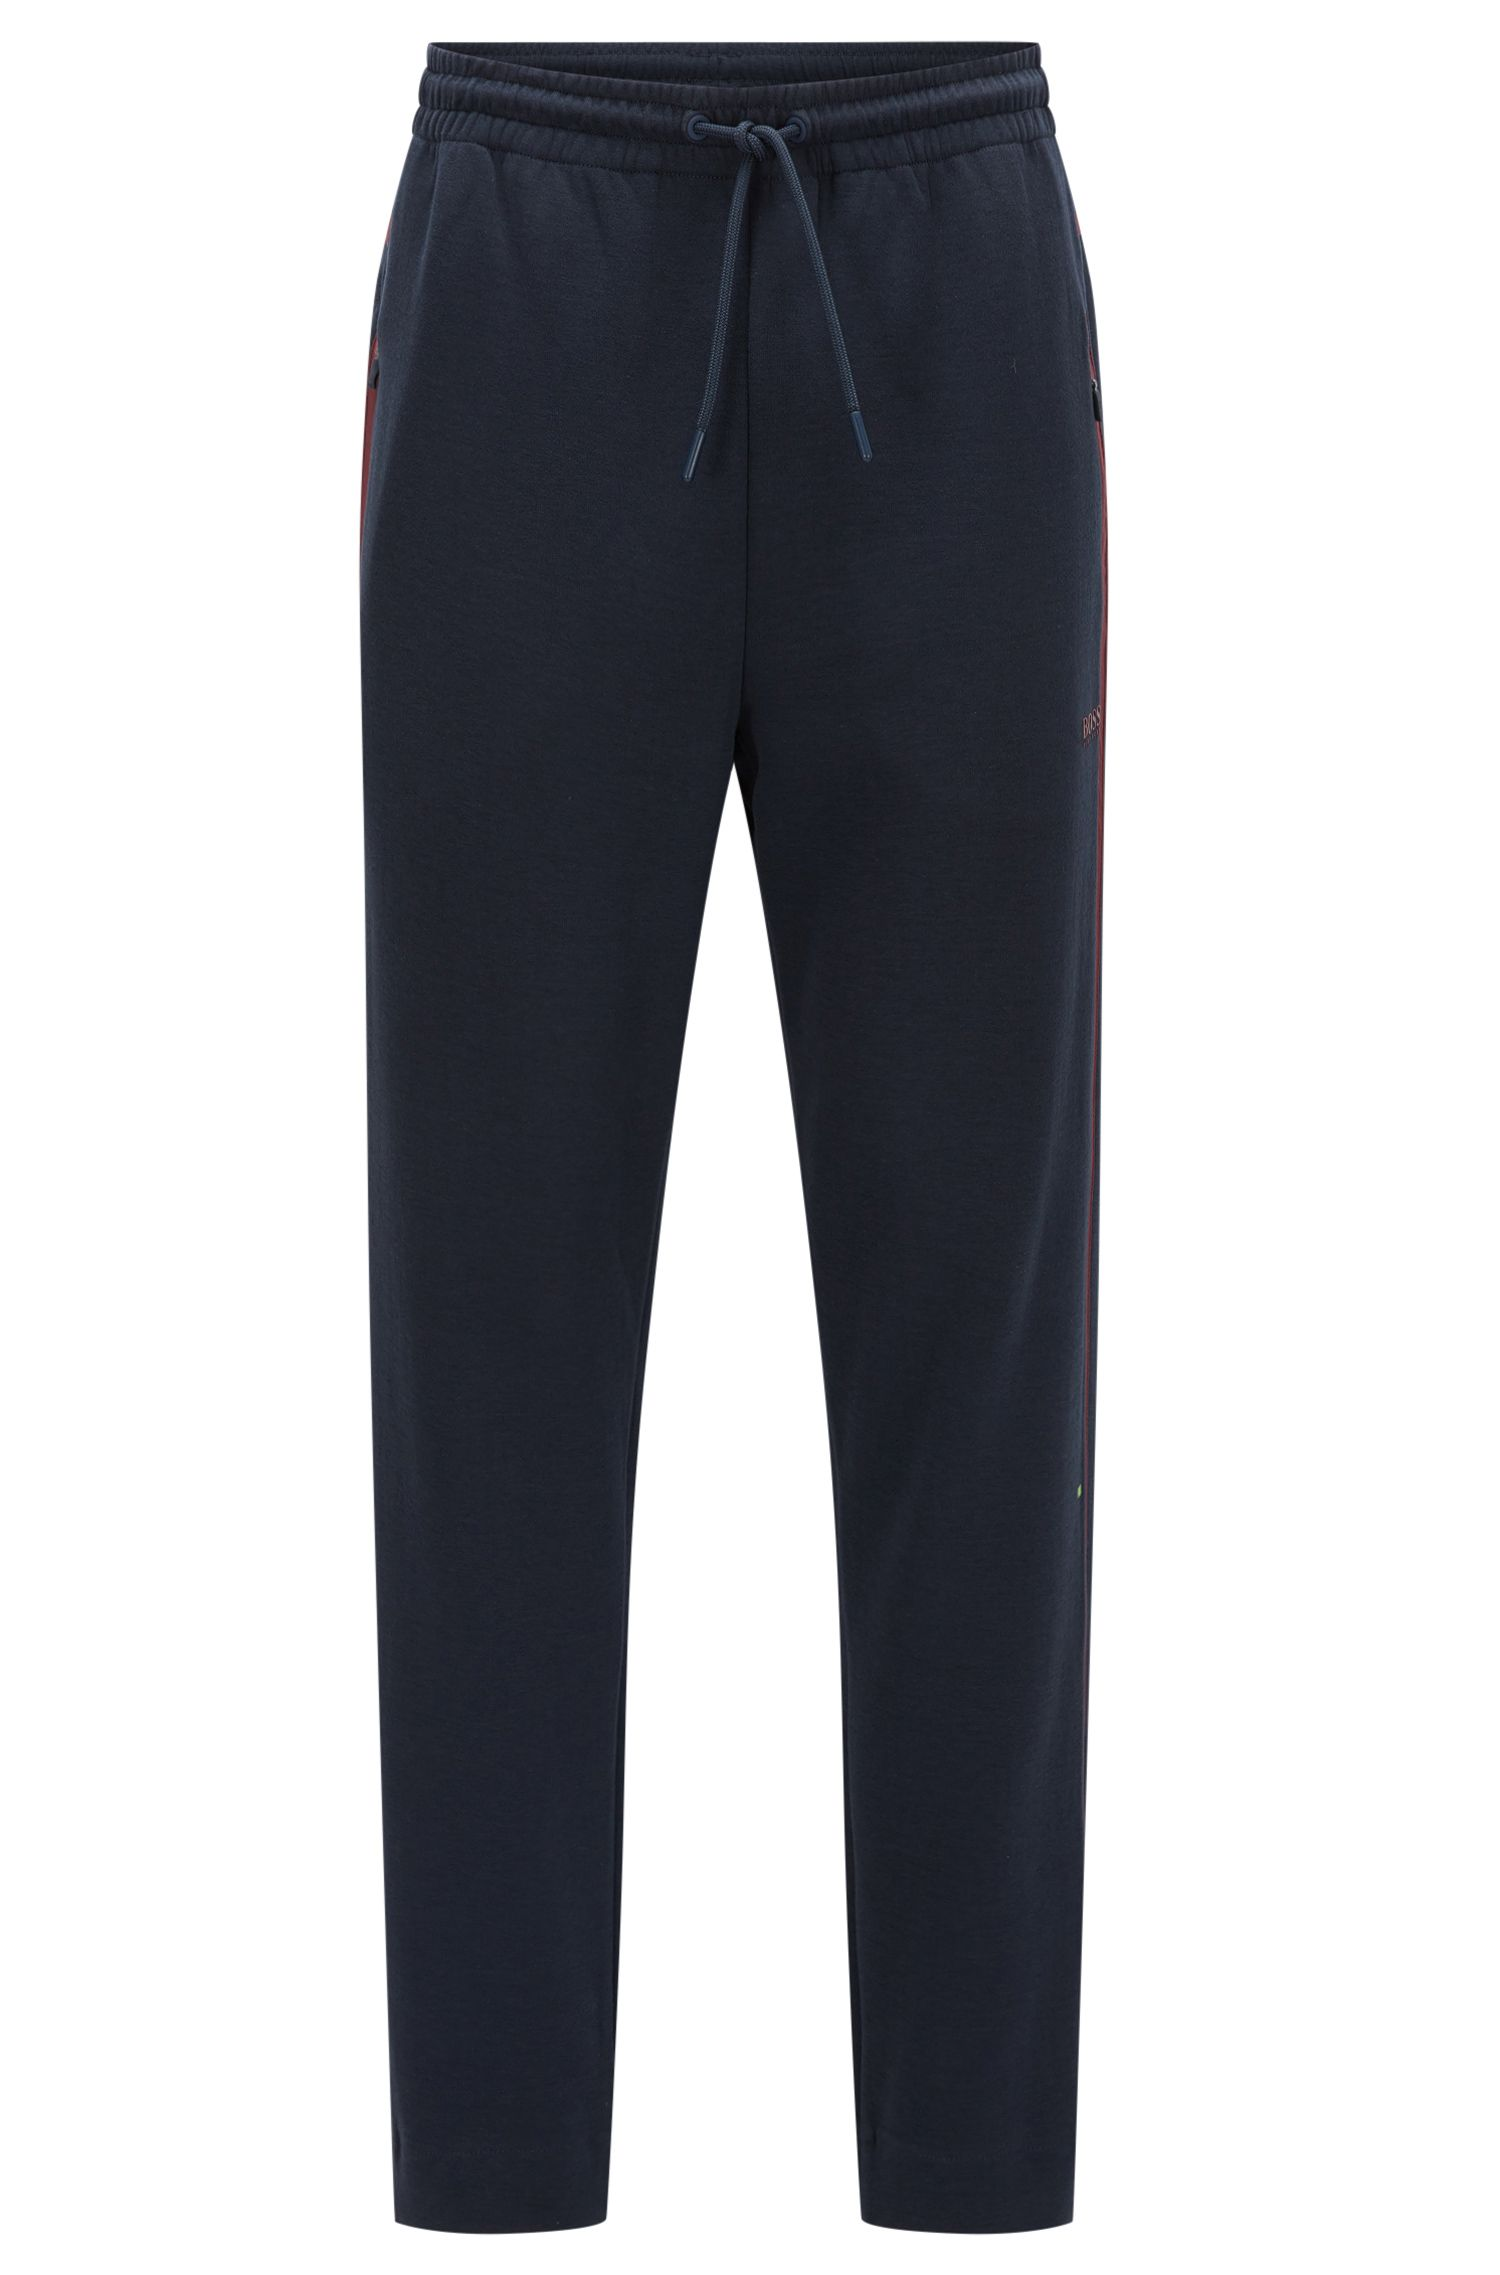 Regular-fit cotton-blend jersey trousers with contrast stripes